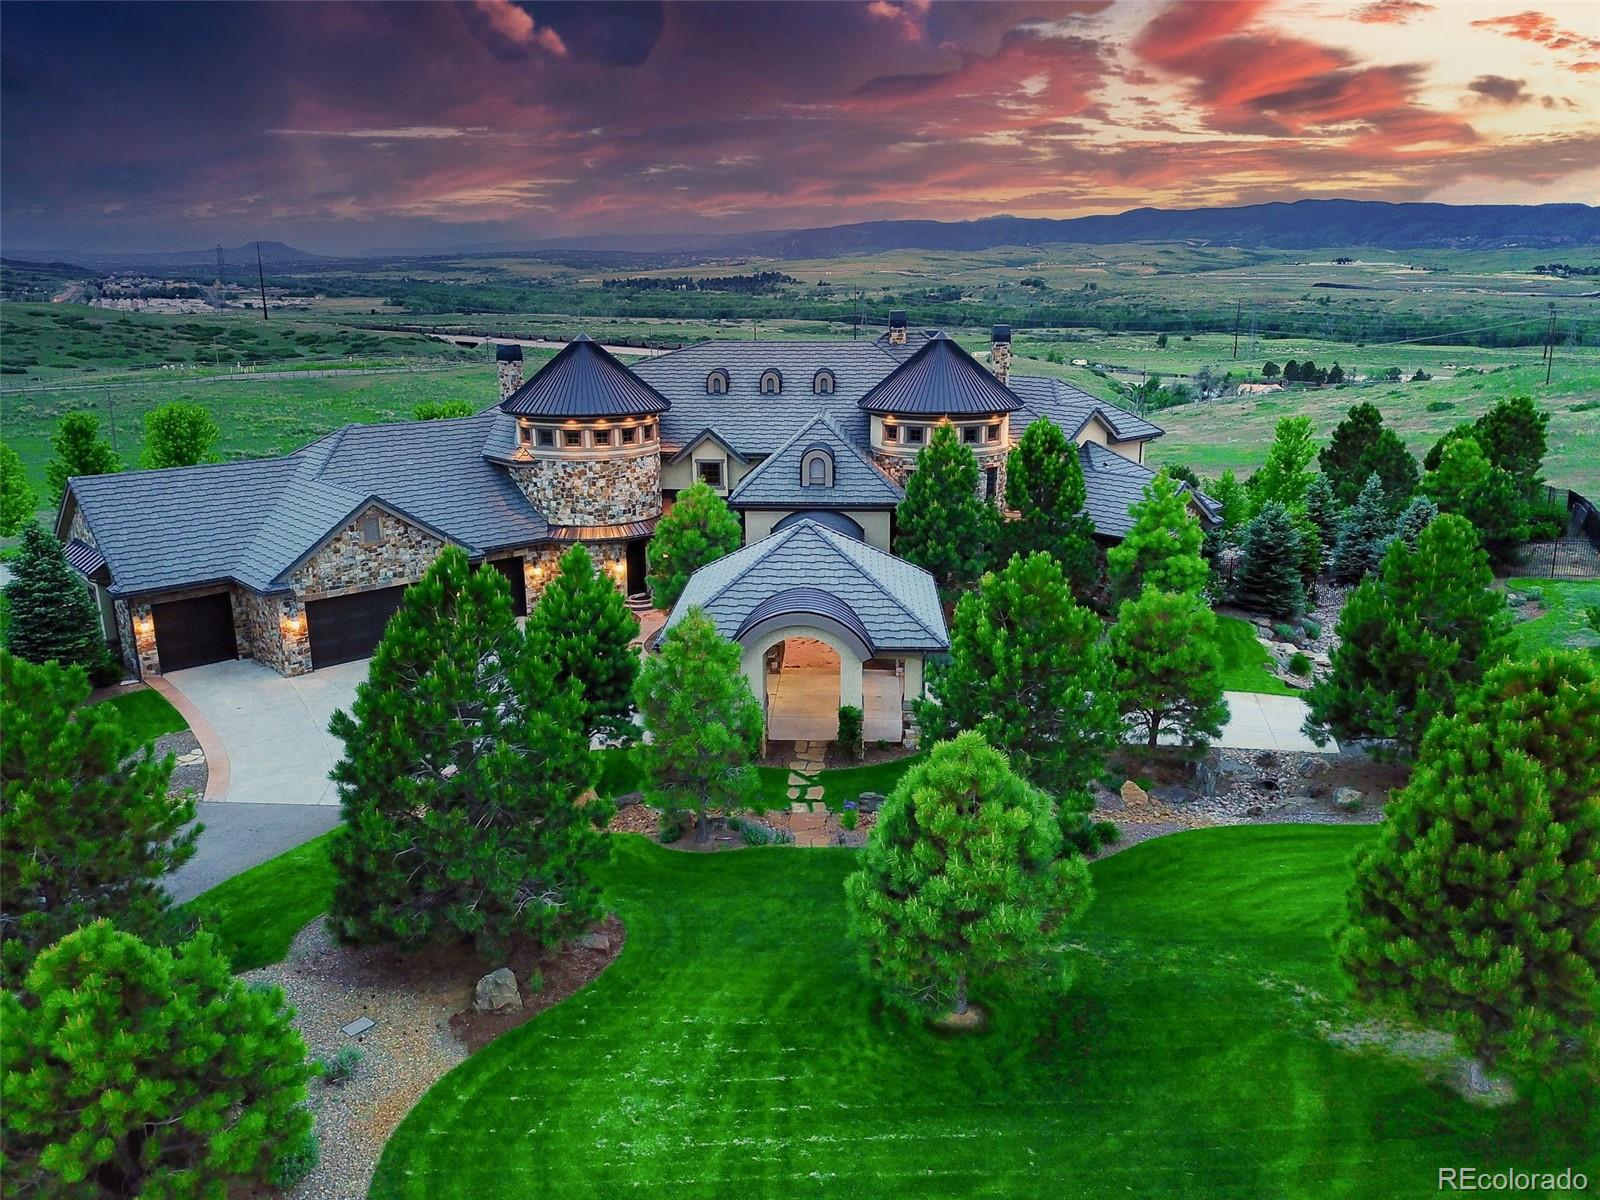 Colorado luxury lifestyle is personified in this exquisite estate on 41.5 acres of unobstructed views of nearby mountains. The 13,609 of finished SqFt boasts 11 bedrooms, most w/ private bathrooms & private balconies/patios. A true gourmet/entertainers kitchen is graced w/ a Wolf gas range, 2 Sub-Zero refrigerators, 2 Asco dishwashers, and a Butlers pantry that includes another refrigerator & dishwasher and leads to a large, formal dining area. The massive kitchen island flows to a large breakfast area, then on to a magnificent 2 story great room, focusing on a massive stone fireplace and a full wet bar to host gatherings w/ family and friends. The primary bedroom suite, private to the west wing, includes fireplace, balcony, 5 piece bath w/ Jacuzzi air tub, heated floors, large-walk in closets and is accessed by stair or elevator through the mater suite sitting room w/ its own wet bar and dishwasher. Features include 2 elevators, a 2 story formal office, 5 fireplaces, and conveyor belt to transport groceries from the garage to kitchen! Guests will love the 2 bed/2 bath mother-in-law suite w/ full kitchen, fireplace, balcony, laundry room, all accessed by its own private entry and elevator. The walkout basement w/ wet bar, workout room, gaming area (extra ventilation), 2 bedrooms w/ private baths and a theater room create perfect entertaining space! An auto lover's dream, the home comes w/ an 8 car attached pass through garage, PLUS a detached 8 car pass through garage with 1,161 of finished SqFt (incl in total) above (rec rm w/ pool table, kitchenette). The property hosts a full size illuminated basketball/tennis court, lush landscaping w/ water feature, fire pit, and 41.5 sprawling acres to enjoy the freedom to ride horses or ATVs & is zoned for agricultural use. This home includes 5 HVAC systems, 4 tankless water heaters, electronic entry gate, heated drive & security system. Rural but minutes to light rail, short drive to downtown Denver. Agent related to Seller